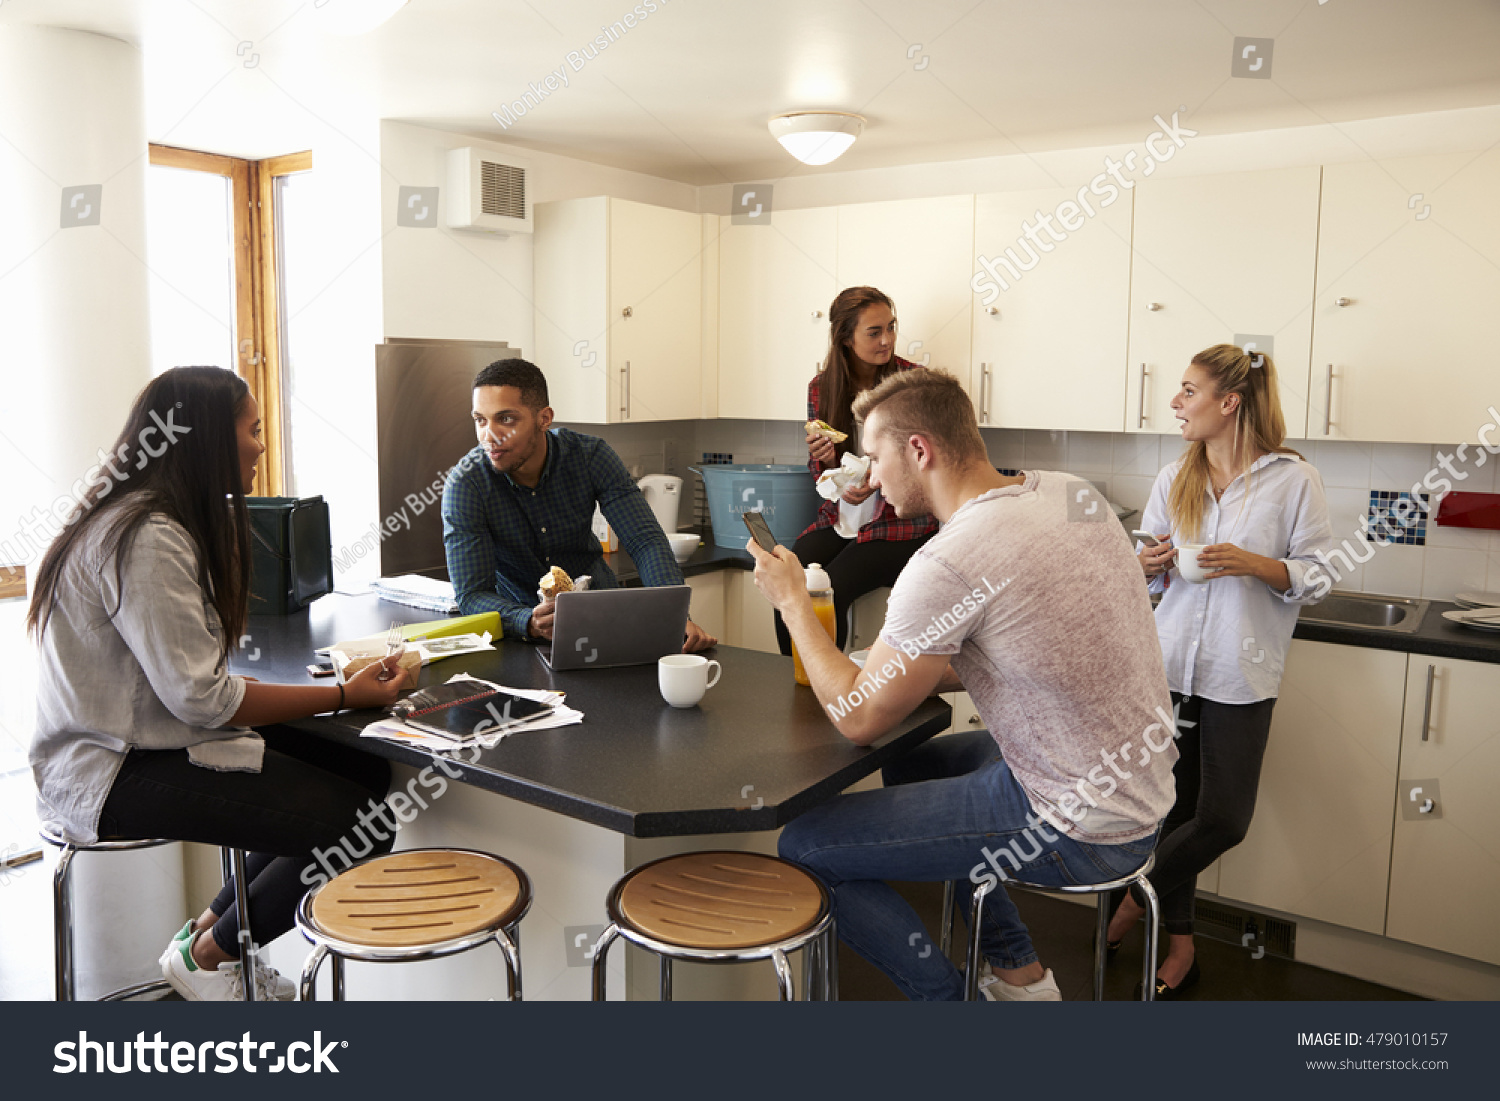 students relaxing in kitchen of shared accommodation - Shared Kitchen